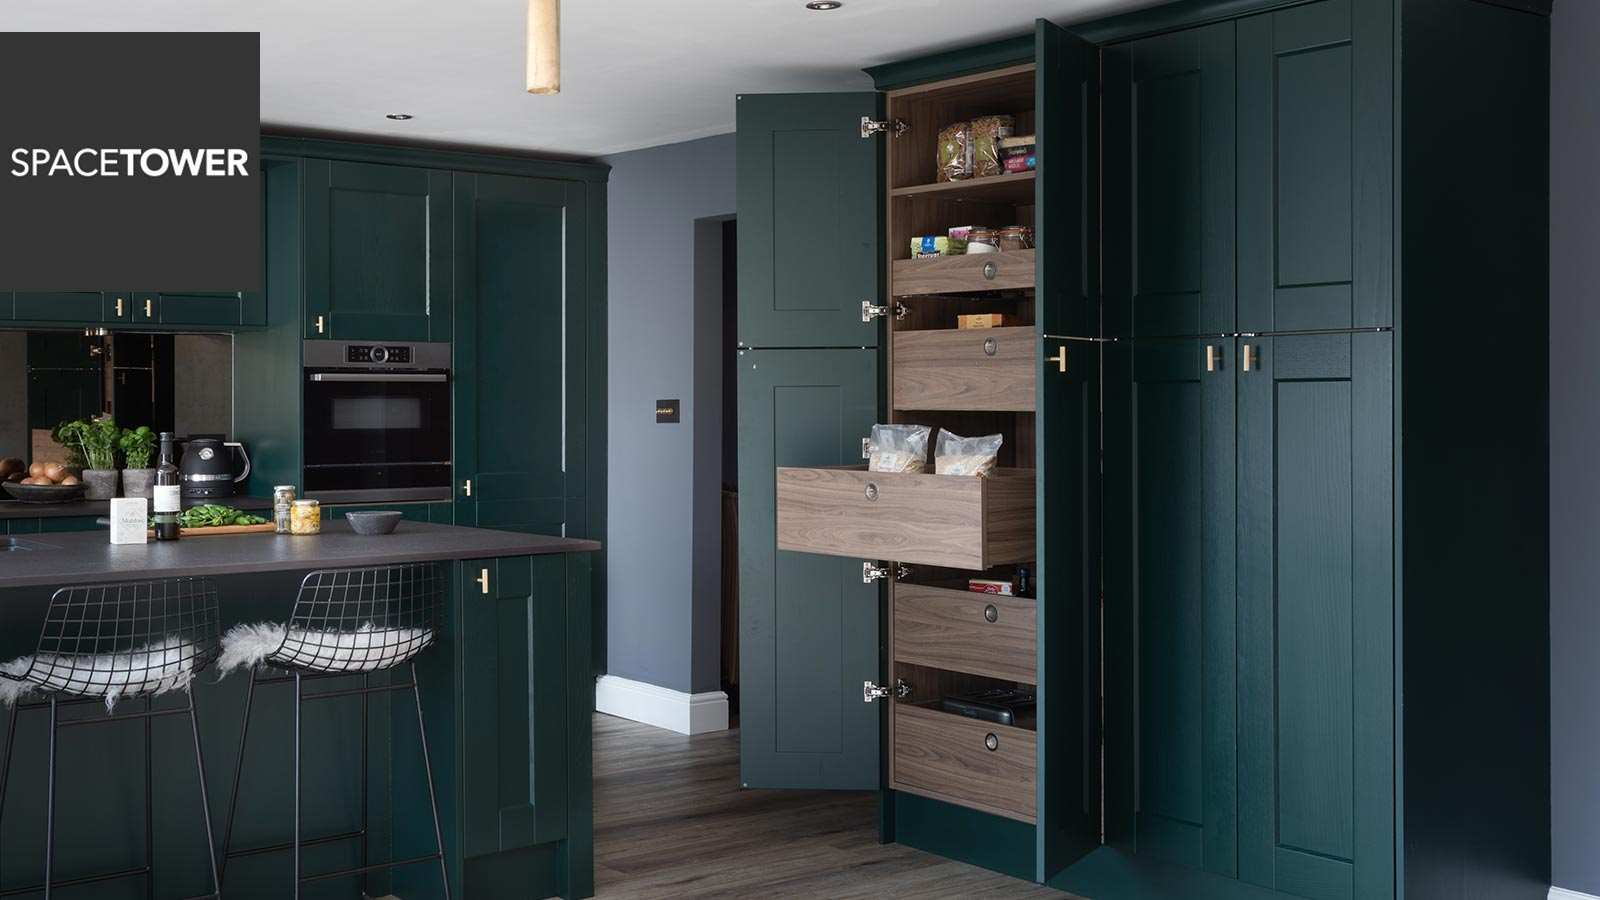 The SpaceTower pull out larder unit is perfect for keeping items within easy reach